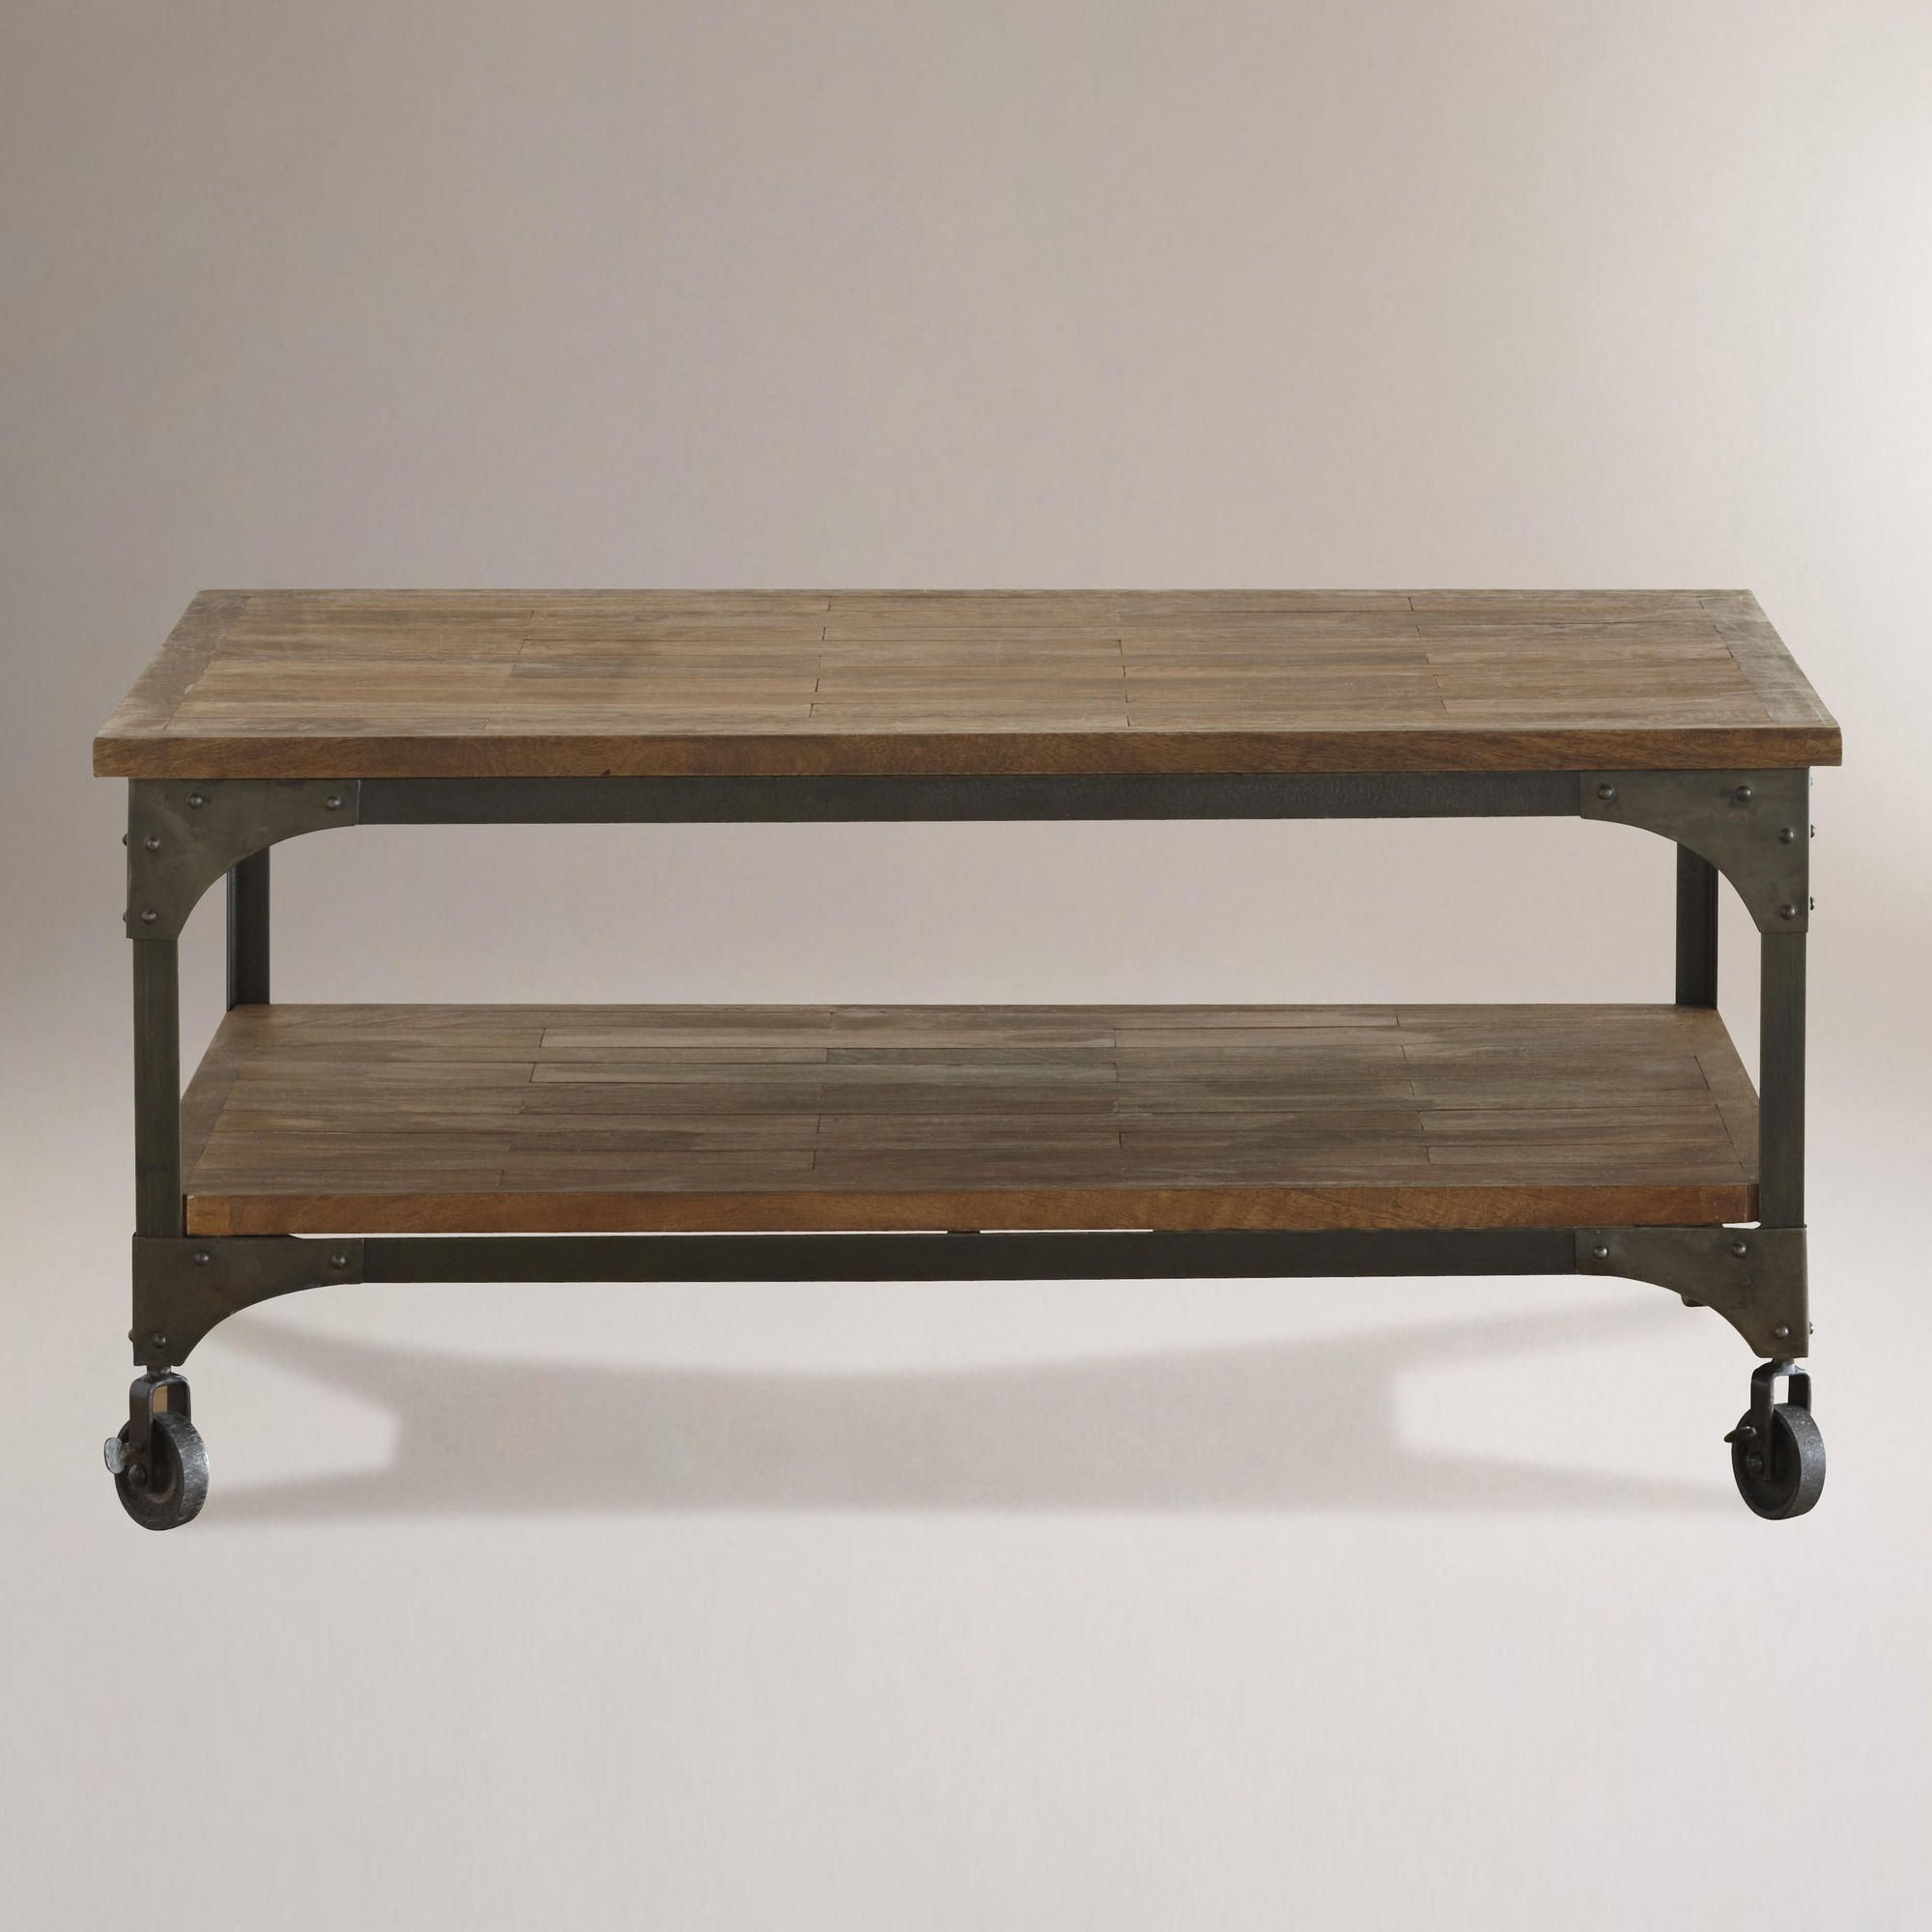 Aiden Coffee Table 28999 Now 22999